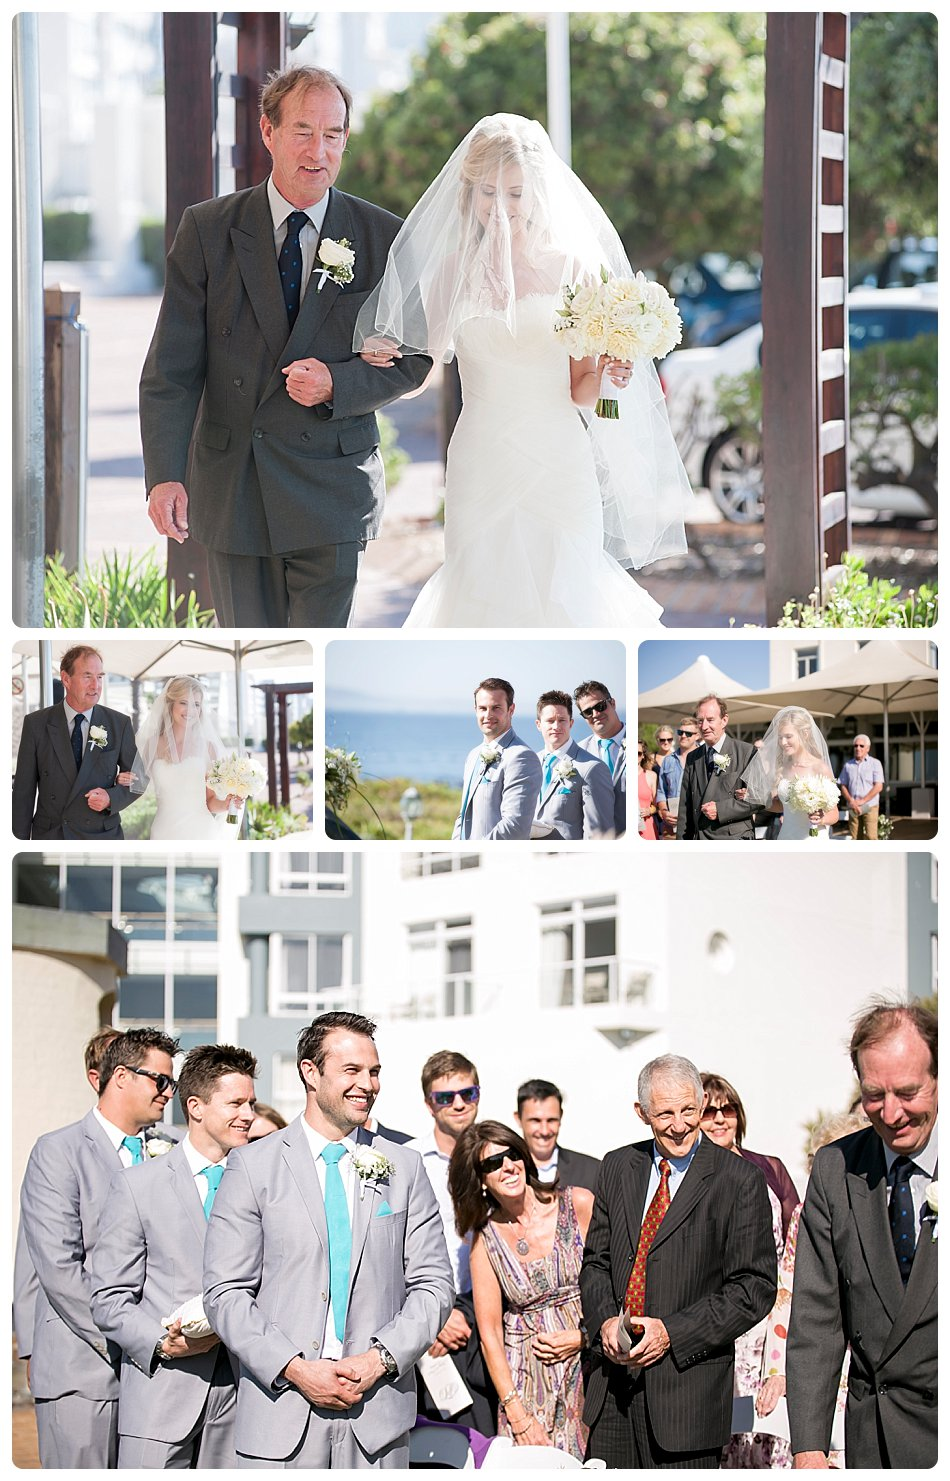 wedding-cape-town-joanne-markland-photography-grangerbay-Paul-jenny-0022